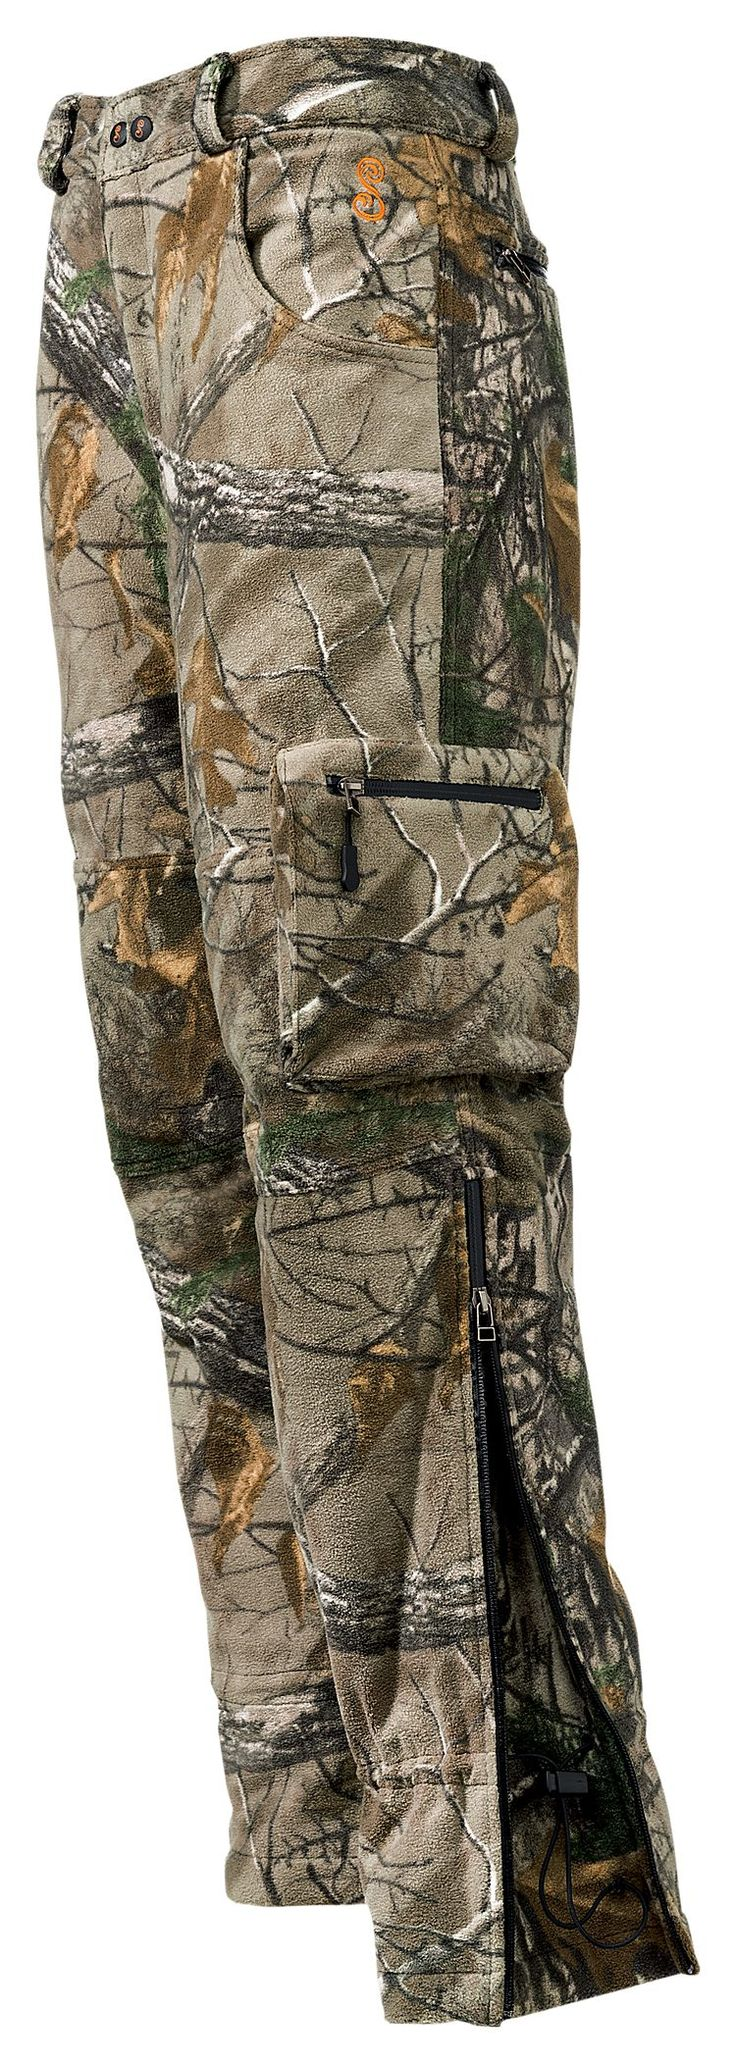 Camouflage Clothing Essentials for a More Successful Hunt. Camouflage clothes are everywhere you look, now that hunting season is in full swing. Camo clothing helps you blend in with your surroundings, so you don't spook your prey. We've rounded up a list of the essentials to simplify your hunt for camo. Bass Pro Shops Mesh Back.